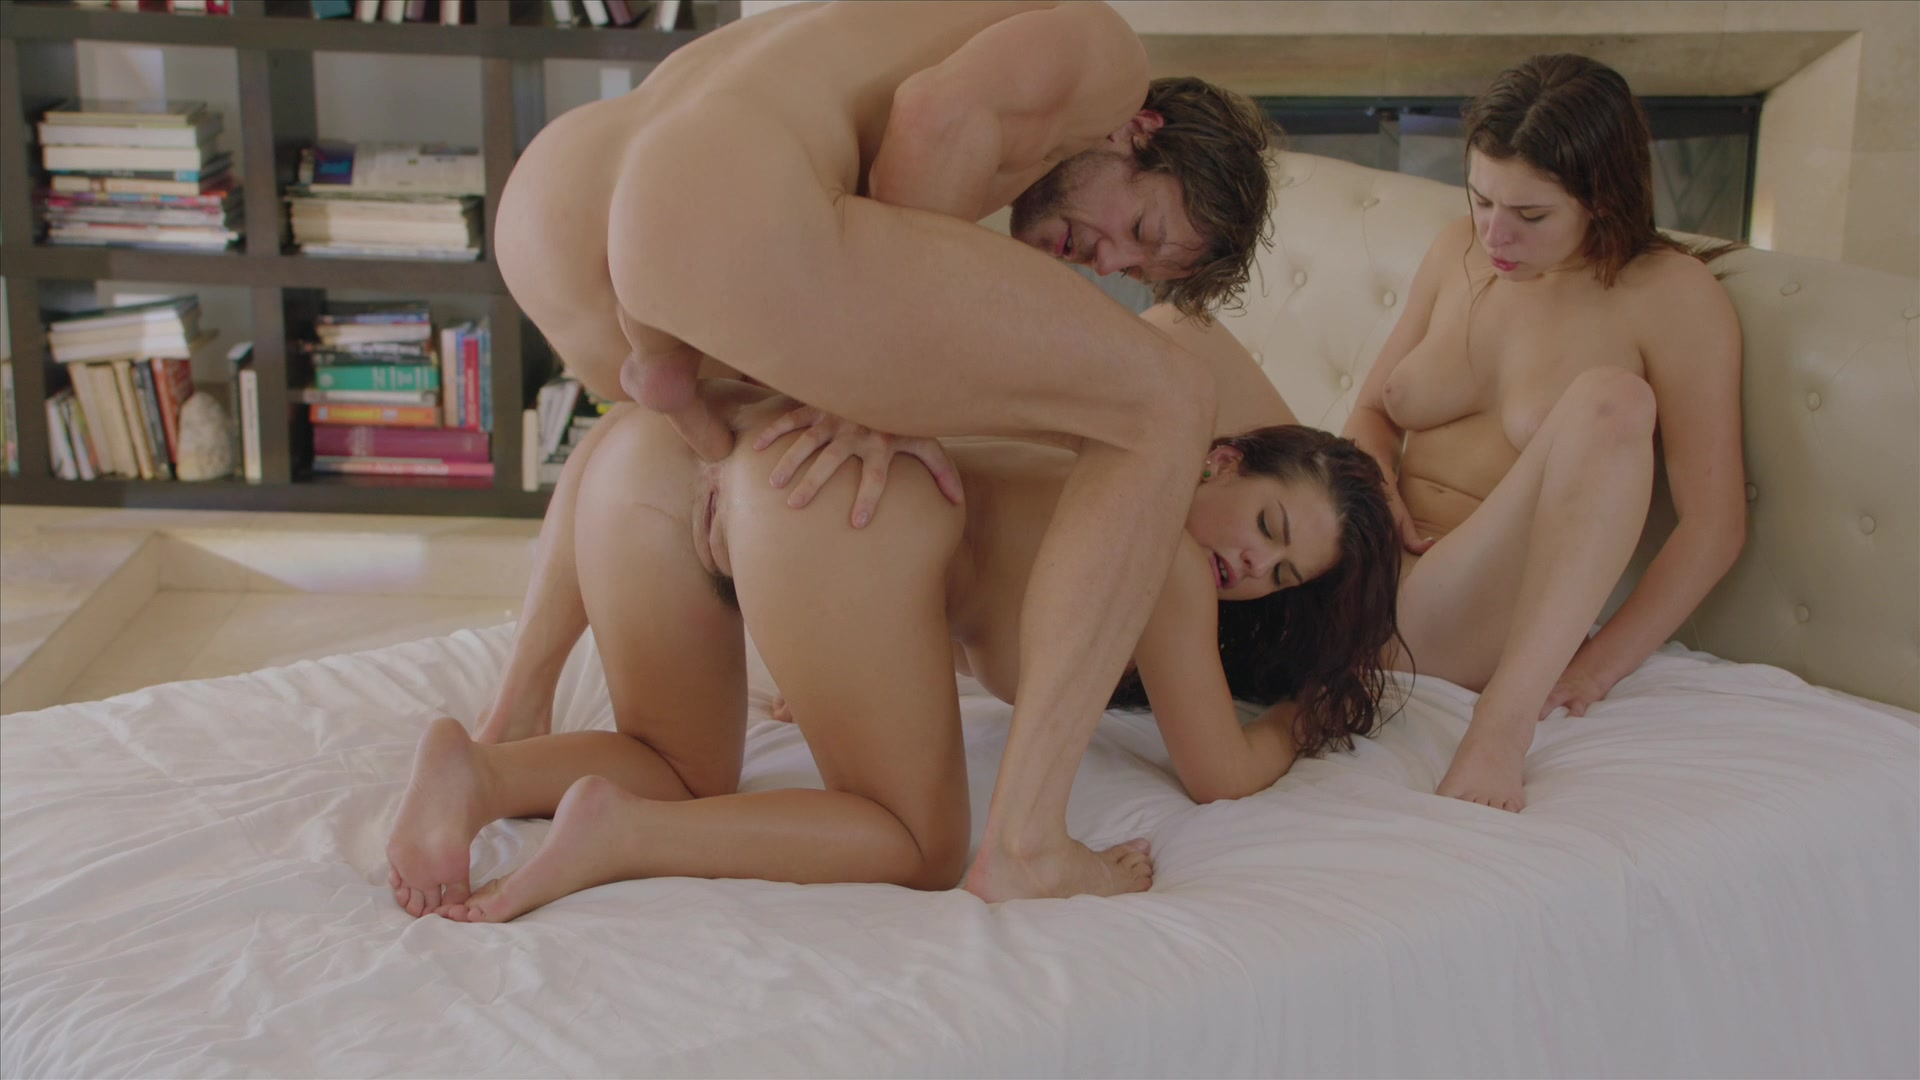 anal threesome porn